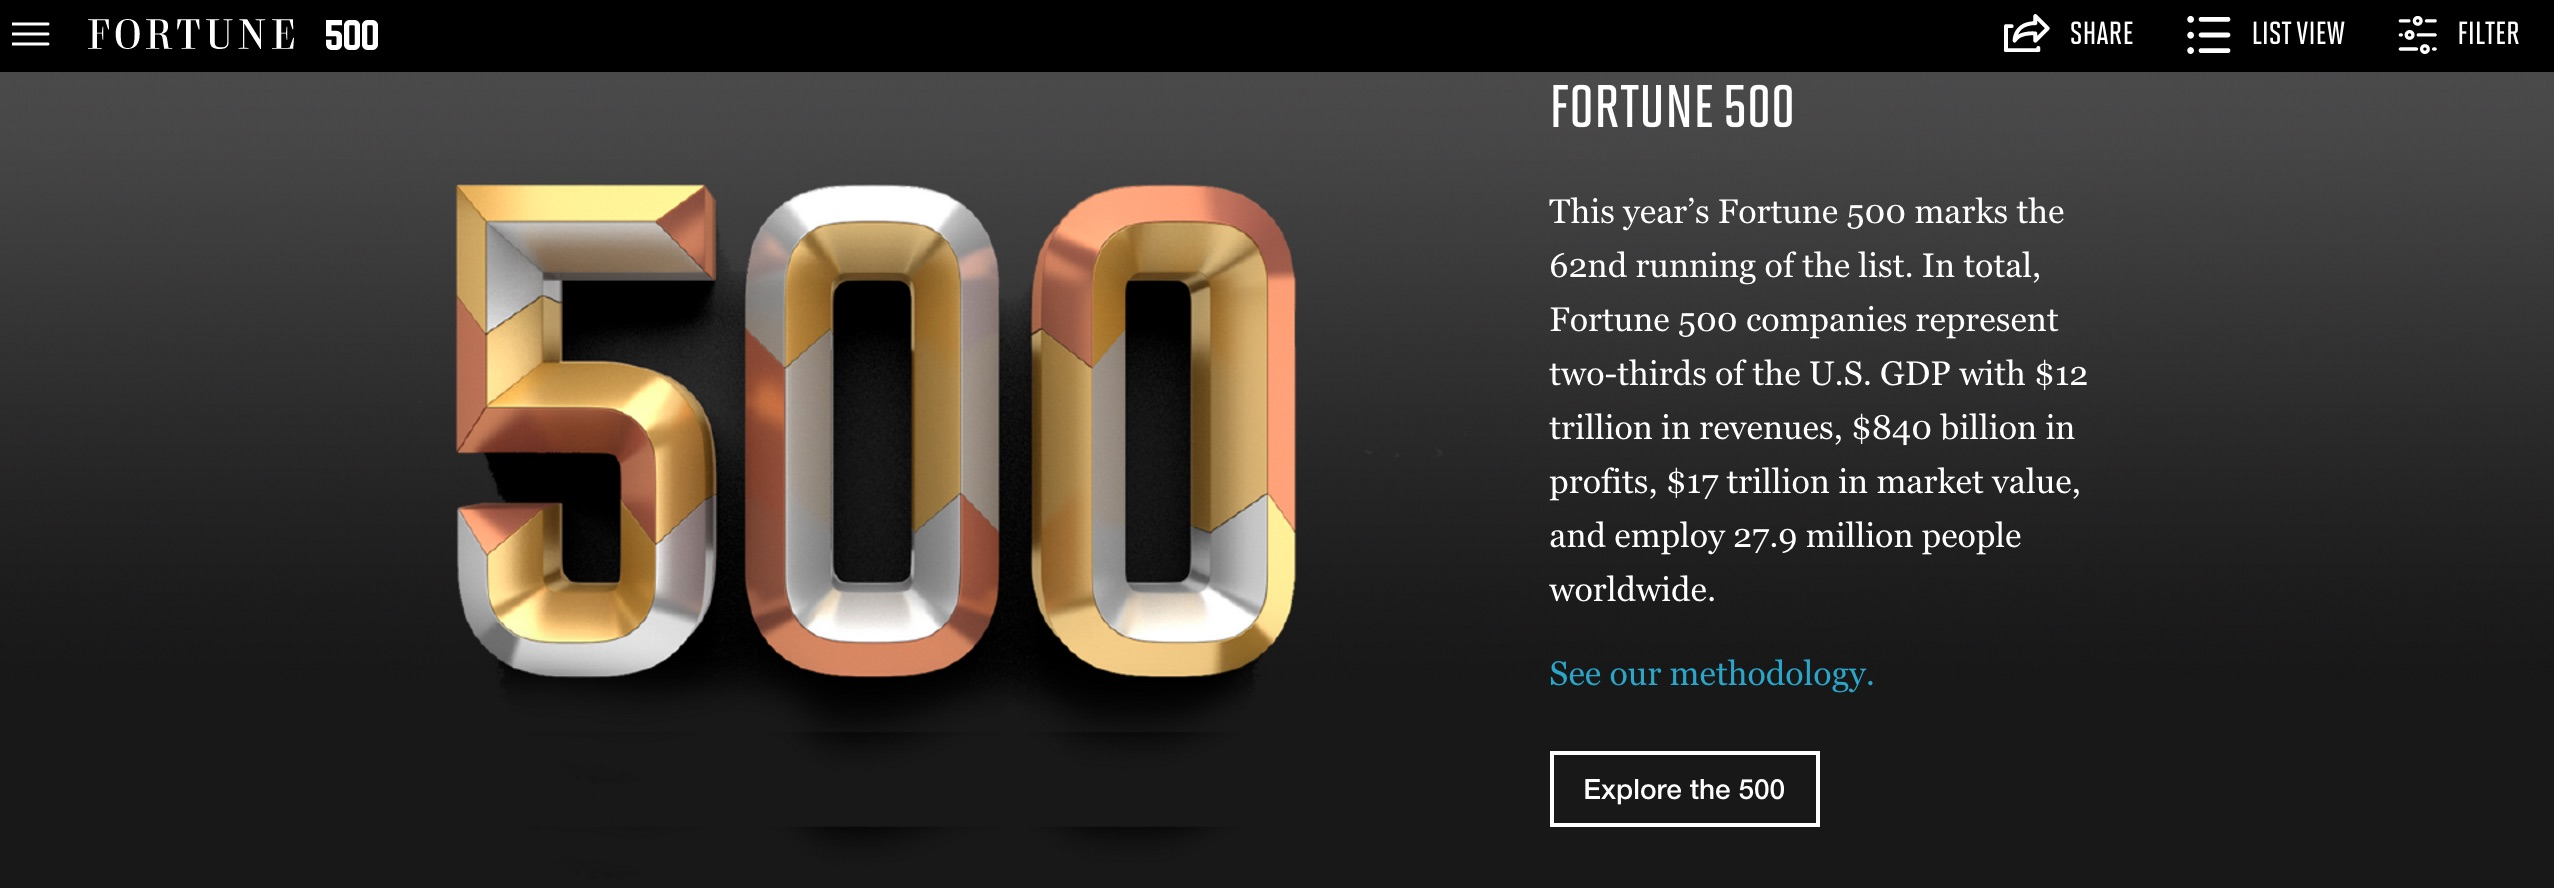 Fortune500Homescreen